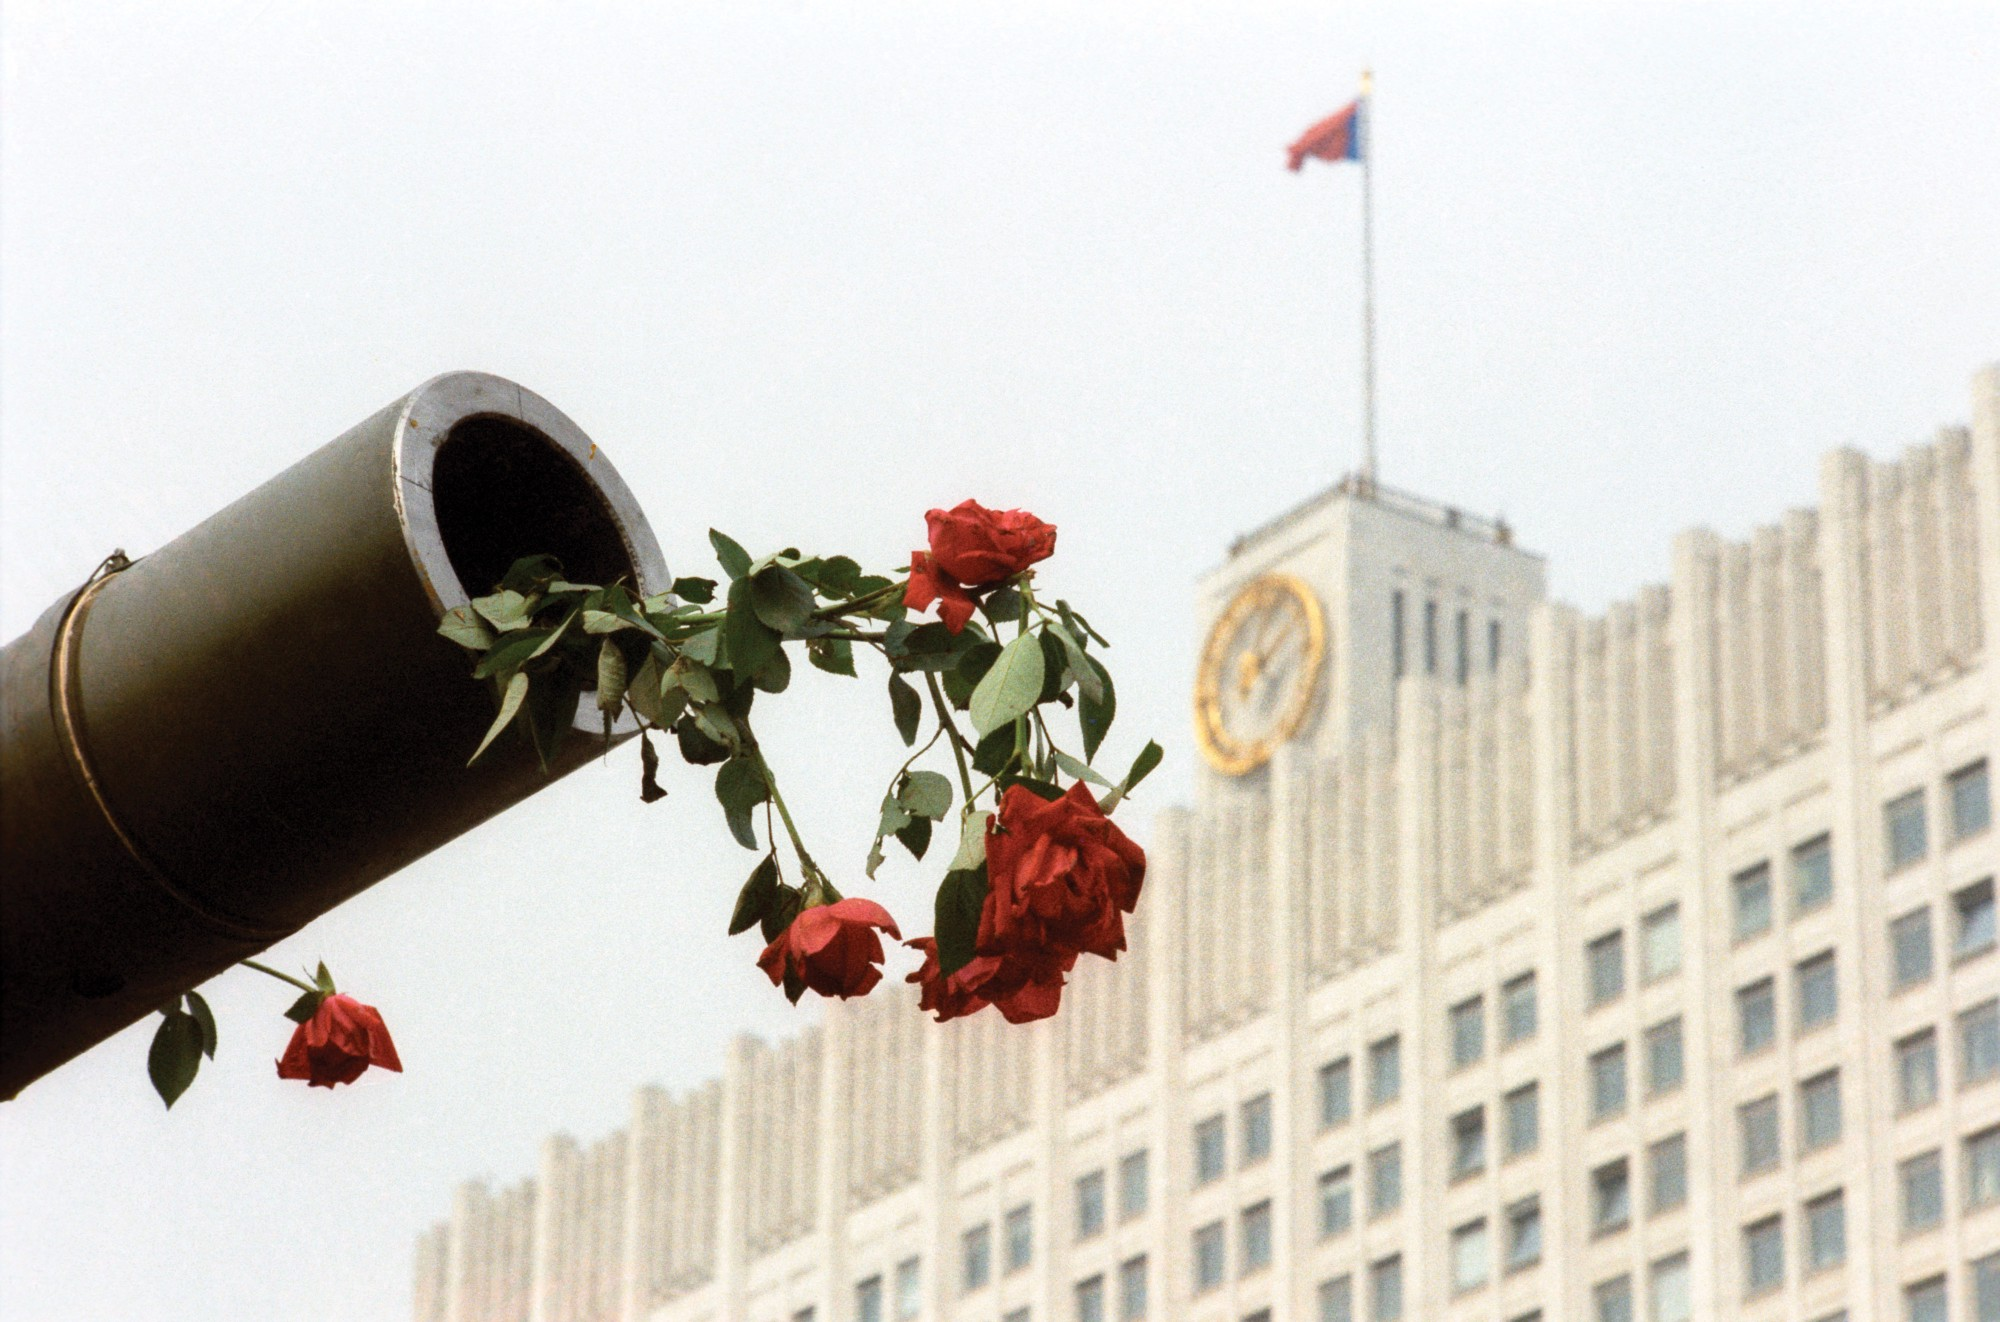 Tank gun with rose